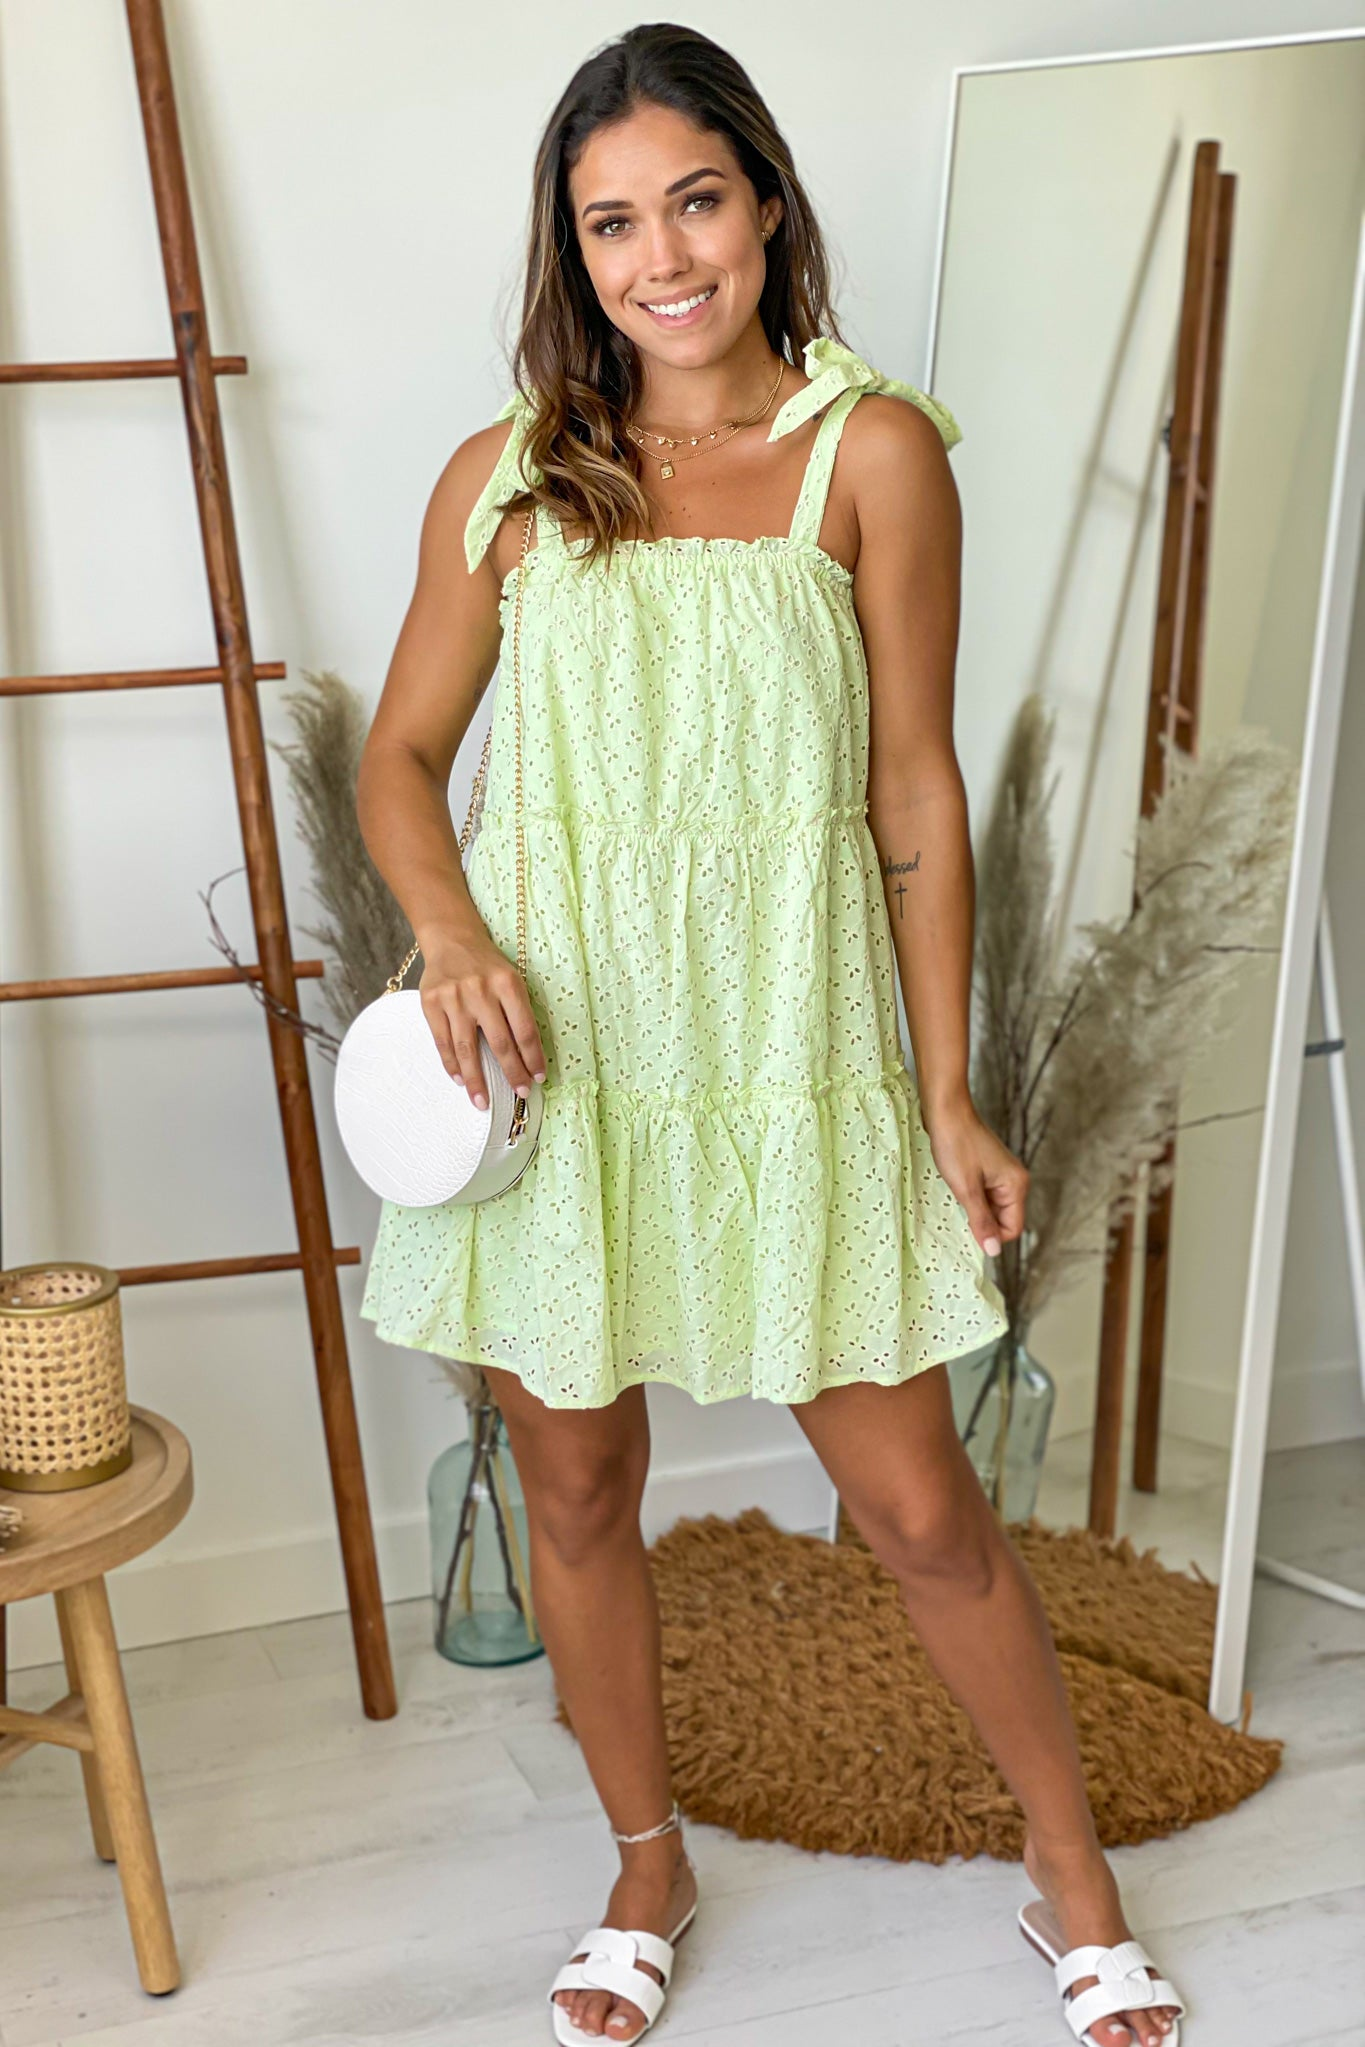 avocado eyelet short dress